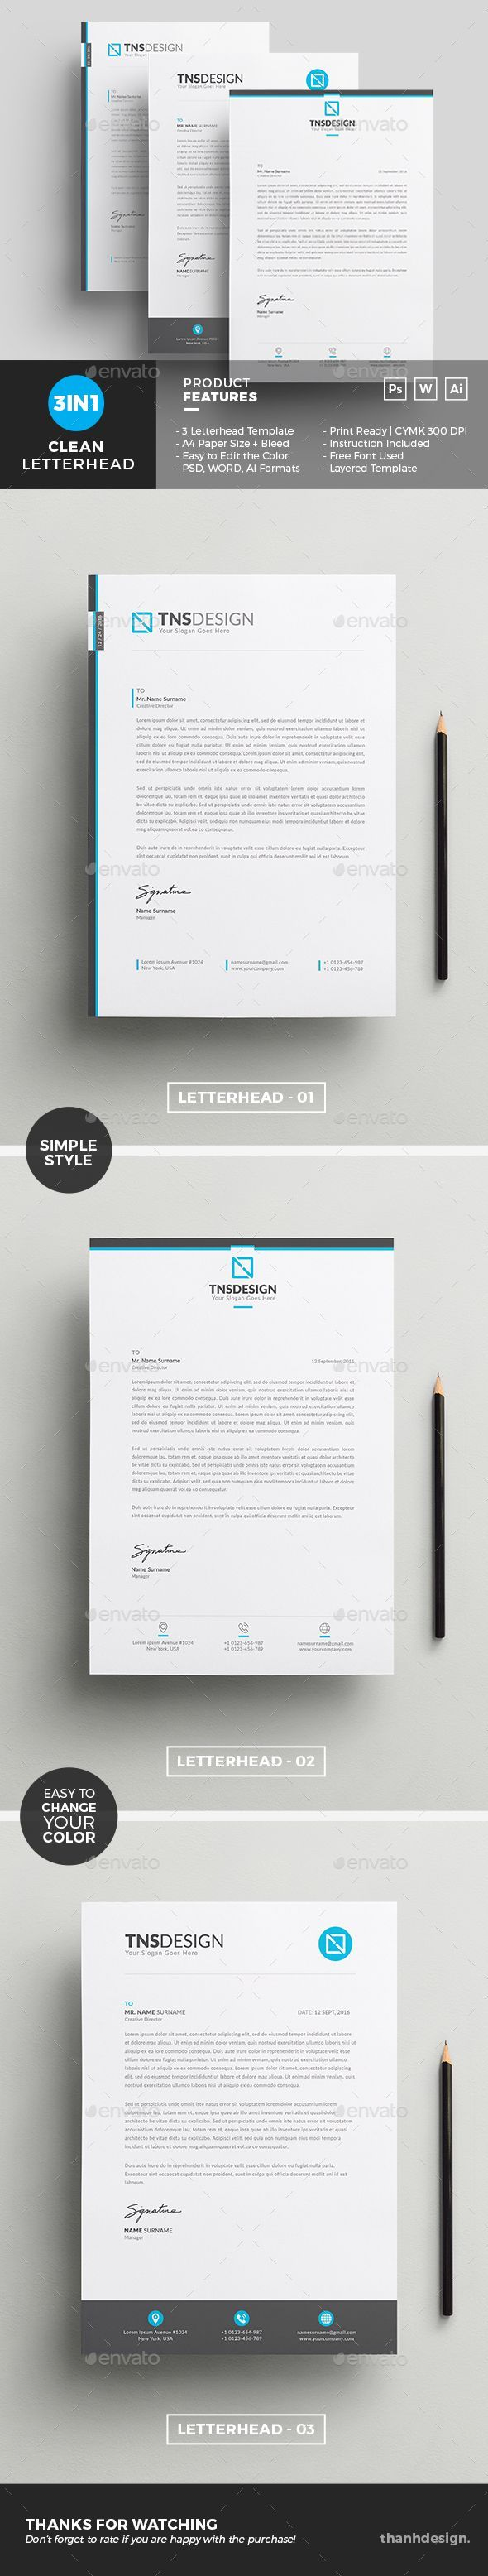 how to create a proposal template in word%0A Letterhead Template